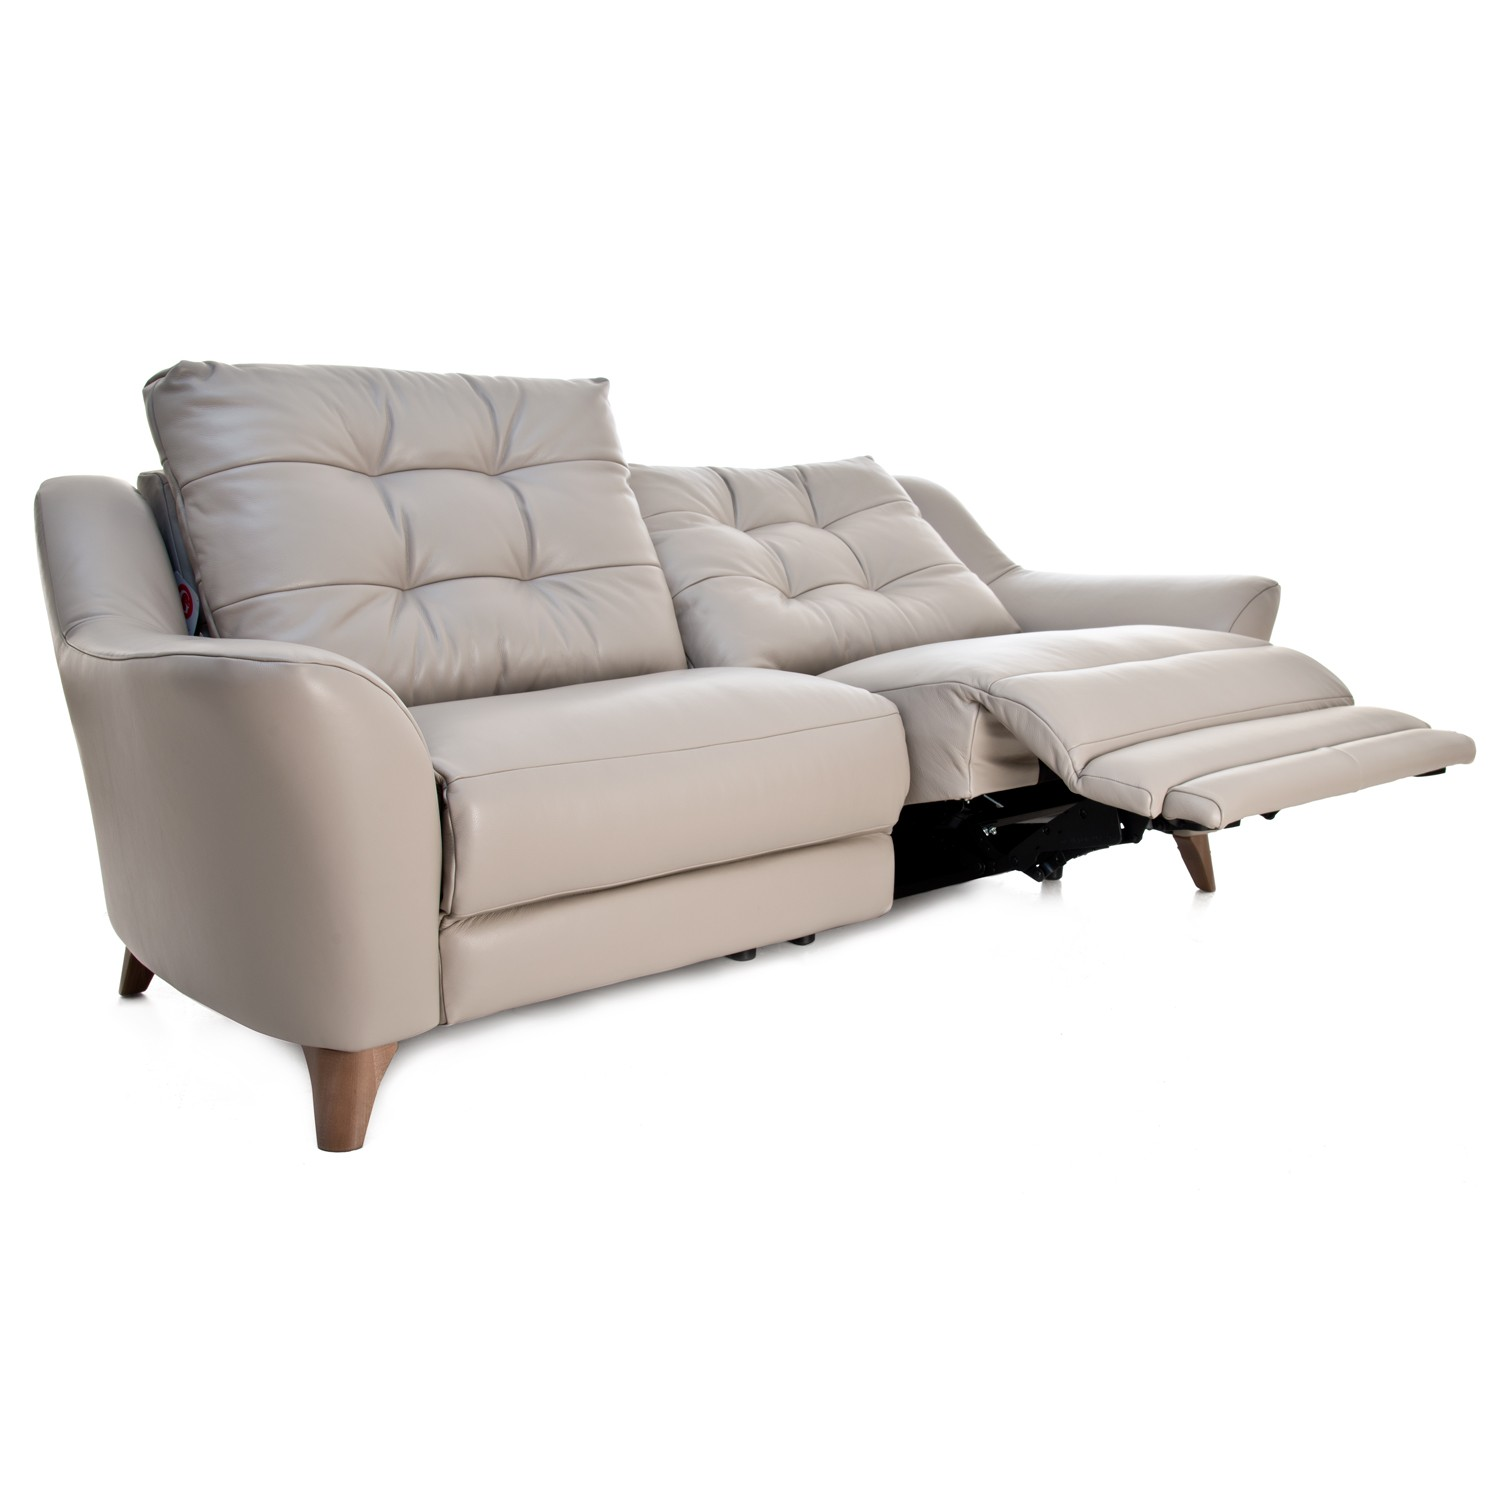 G plan pip three seater power recliner sofa for Sofa 7 seater